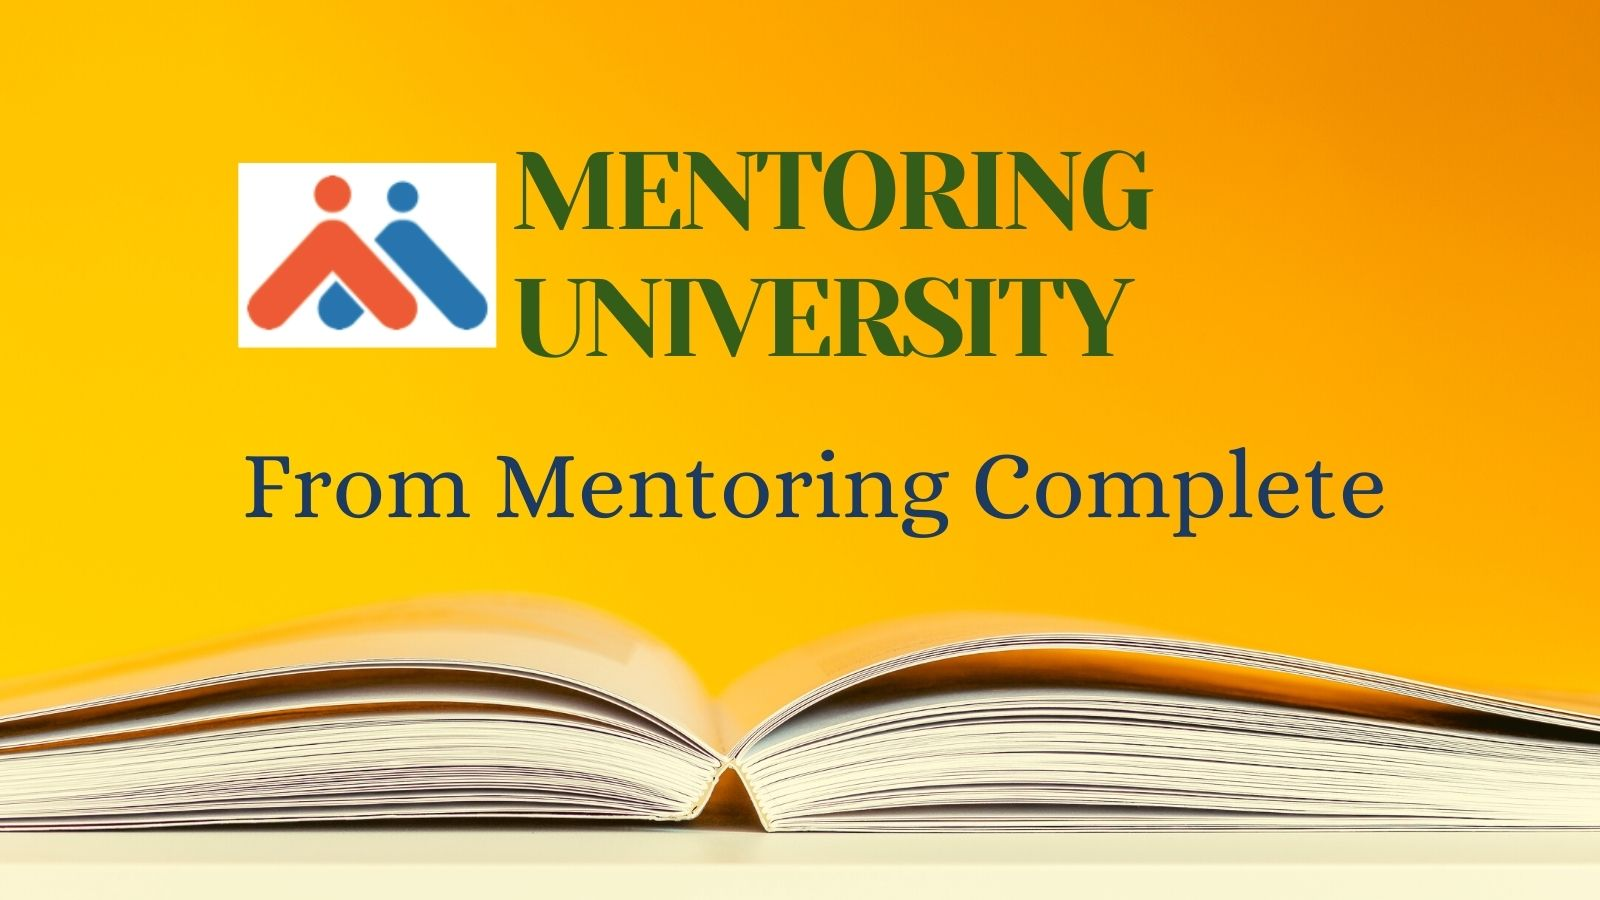 Mentoring University from Mentoring Complete - Mentoring Resources